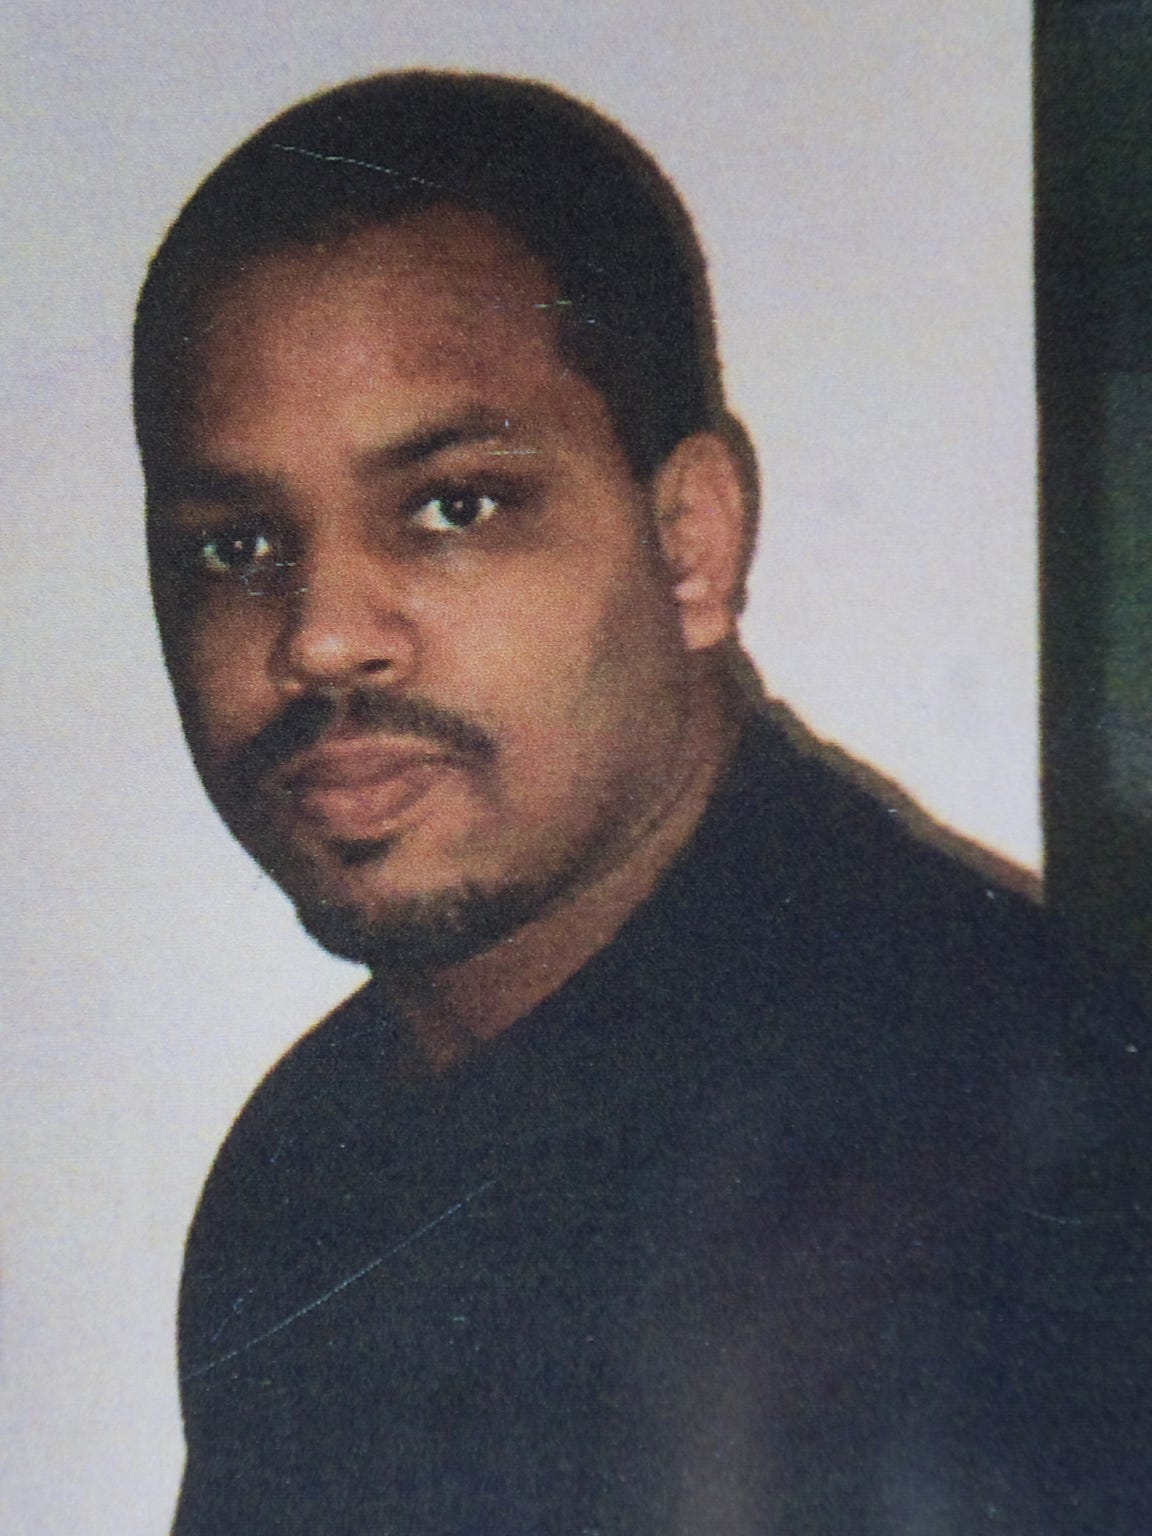 Keith Briscoe died during a struggle with Winslow Police outside a Wawa convenience store on May 3, 2010.